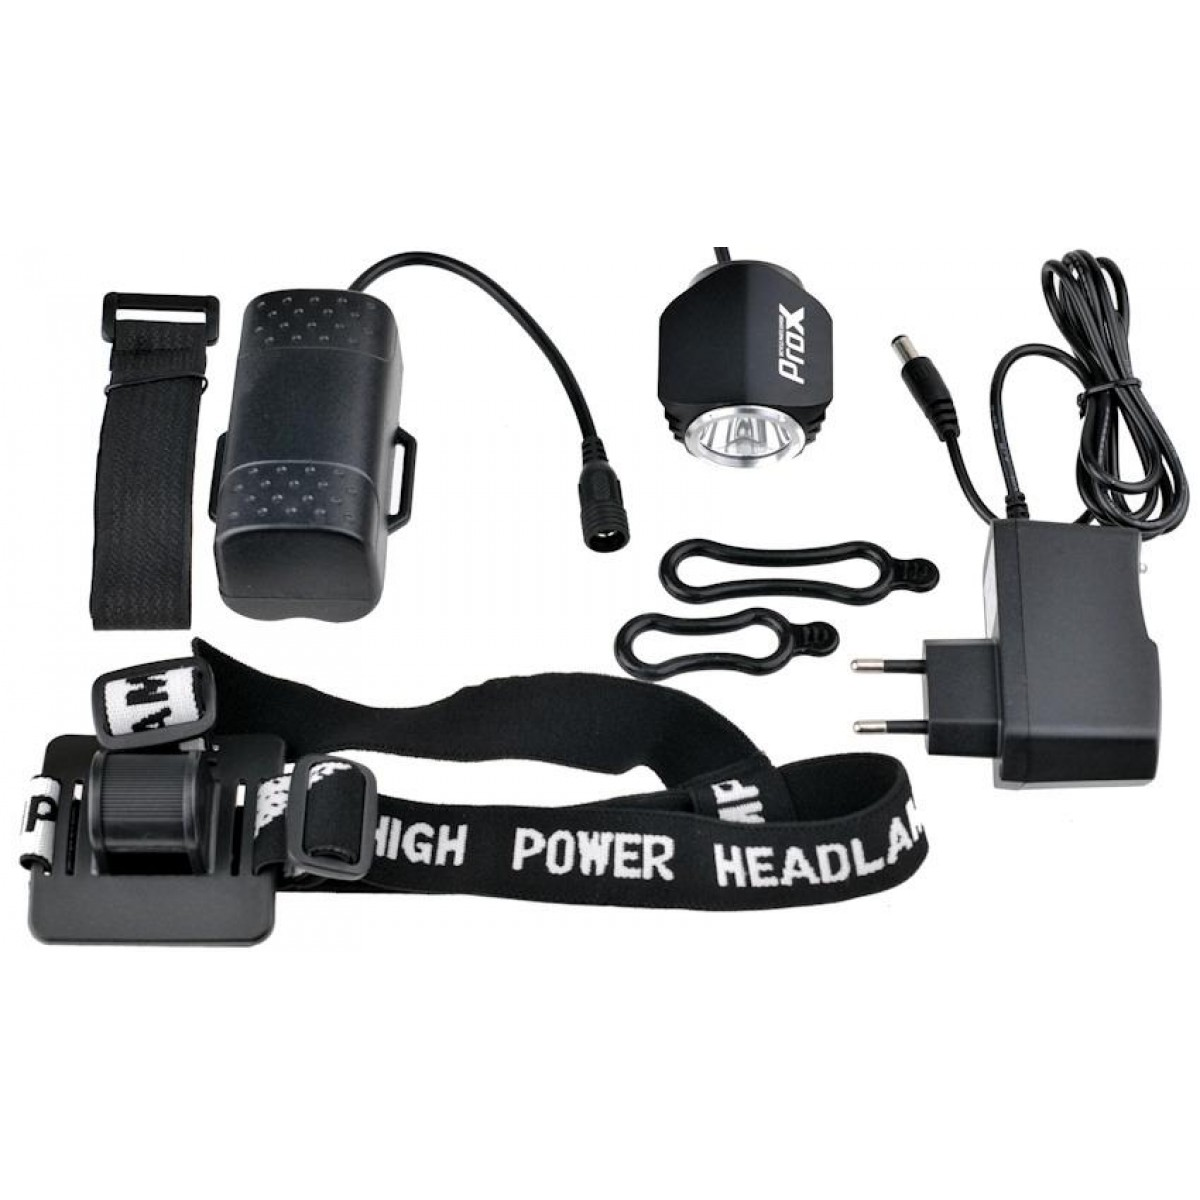 Фара передняя ProX Eco II + Power Cree (A-O-B-P-0314)